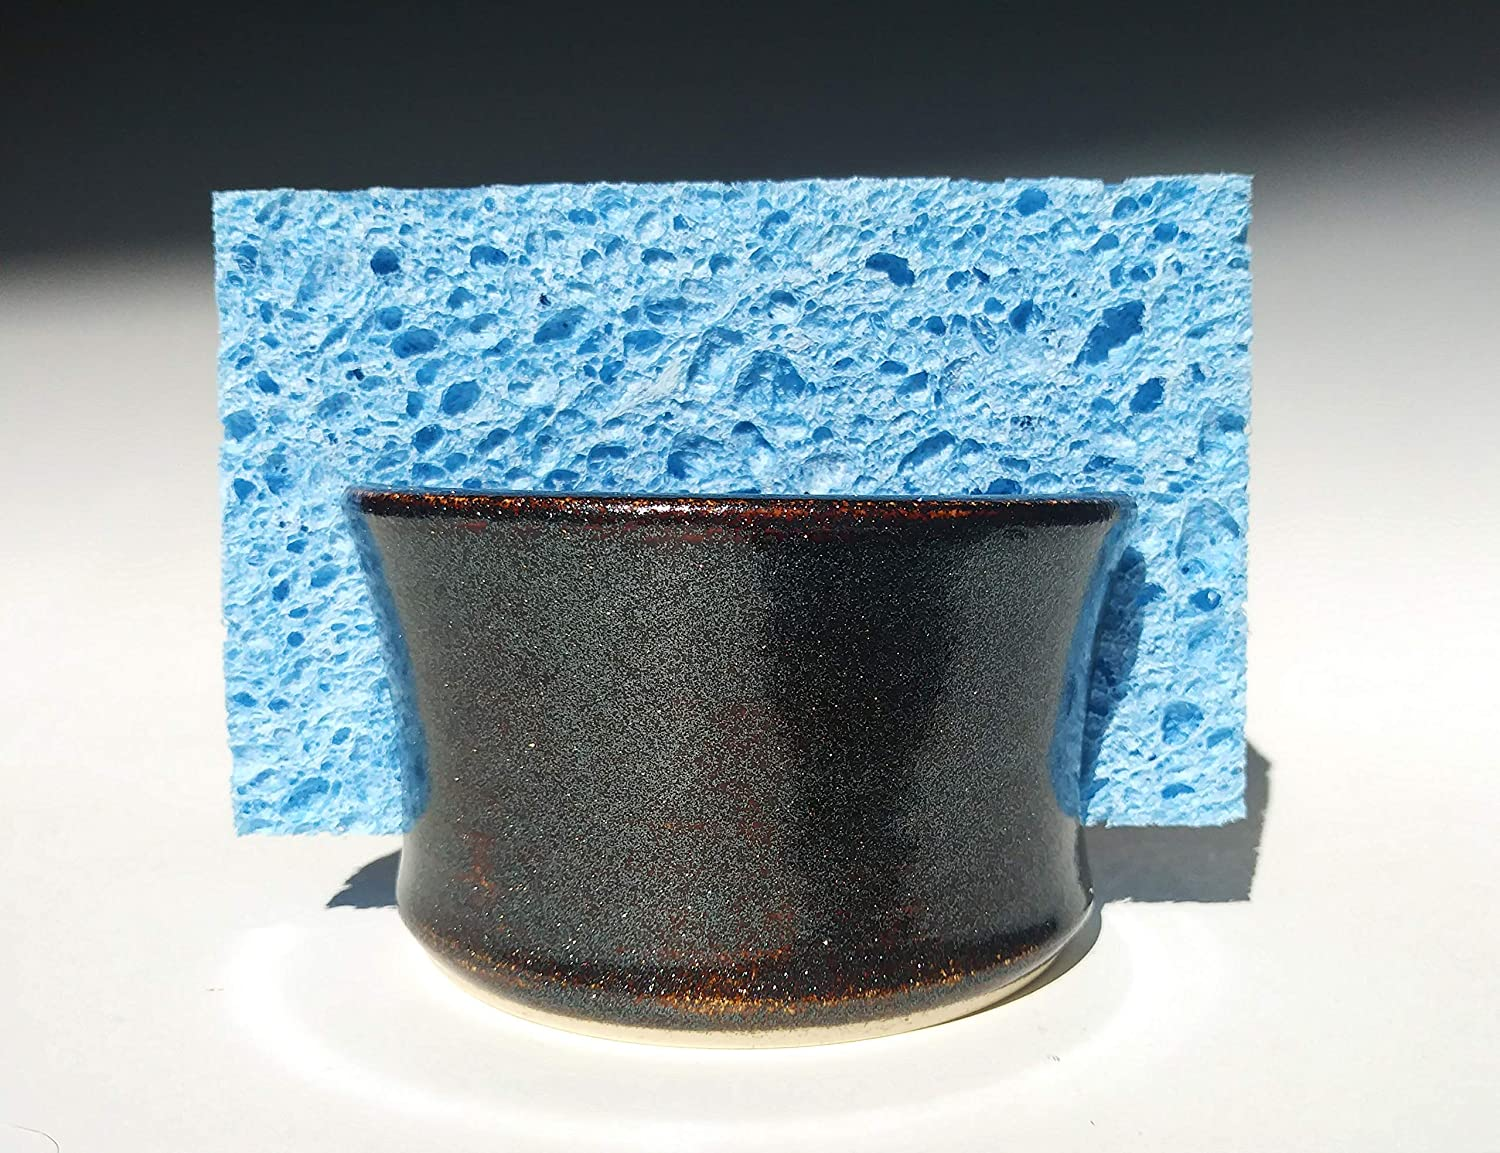 Handmade Sponge Holder/Sink Caddy Stoneware Ceramic Pottery in Black Amber GLITTER Sparkle